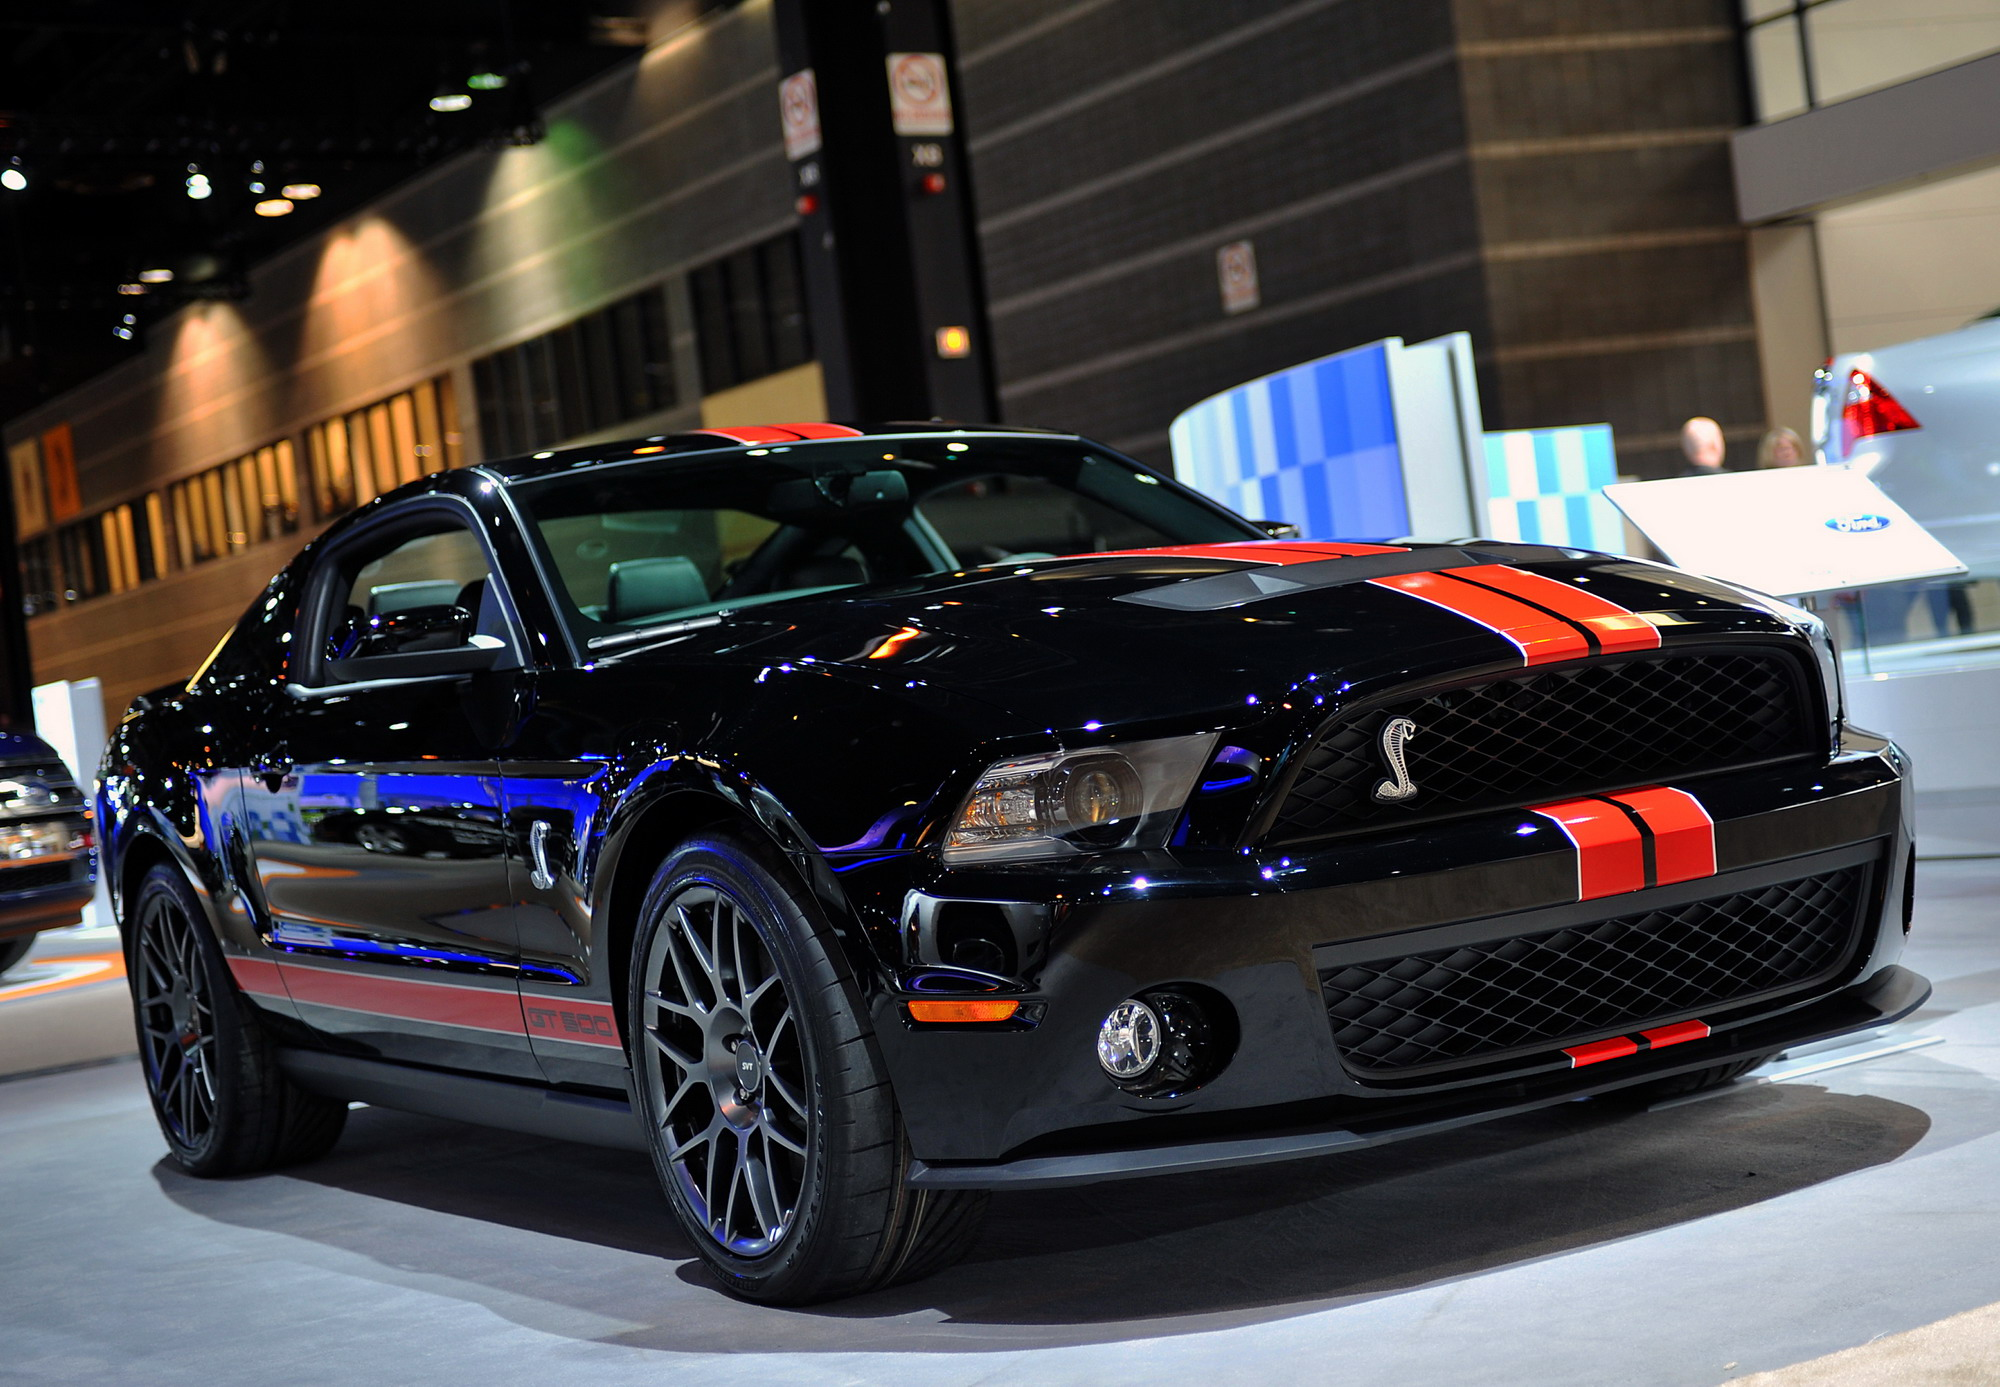 2011 ford shelby gt500 production limited to 5 500 units news top speed. Black Bedroom Furniture Sets. Home Design Ideas